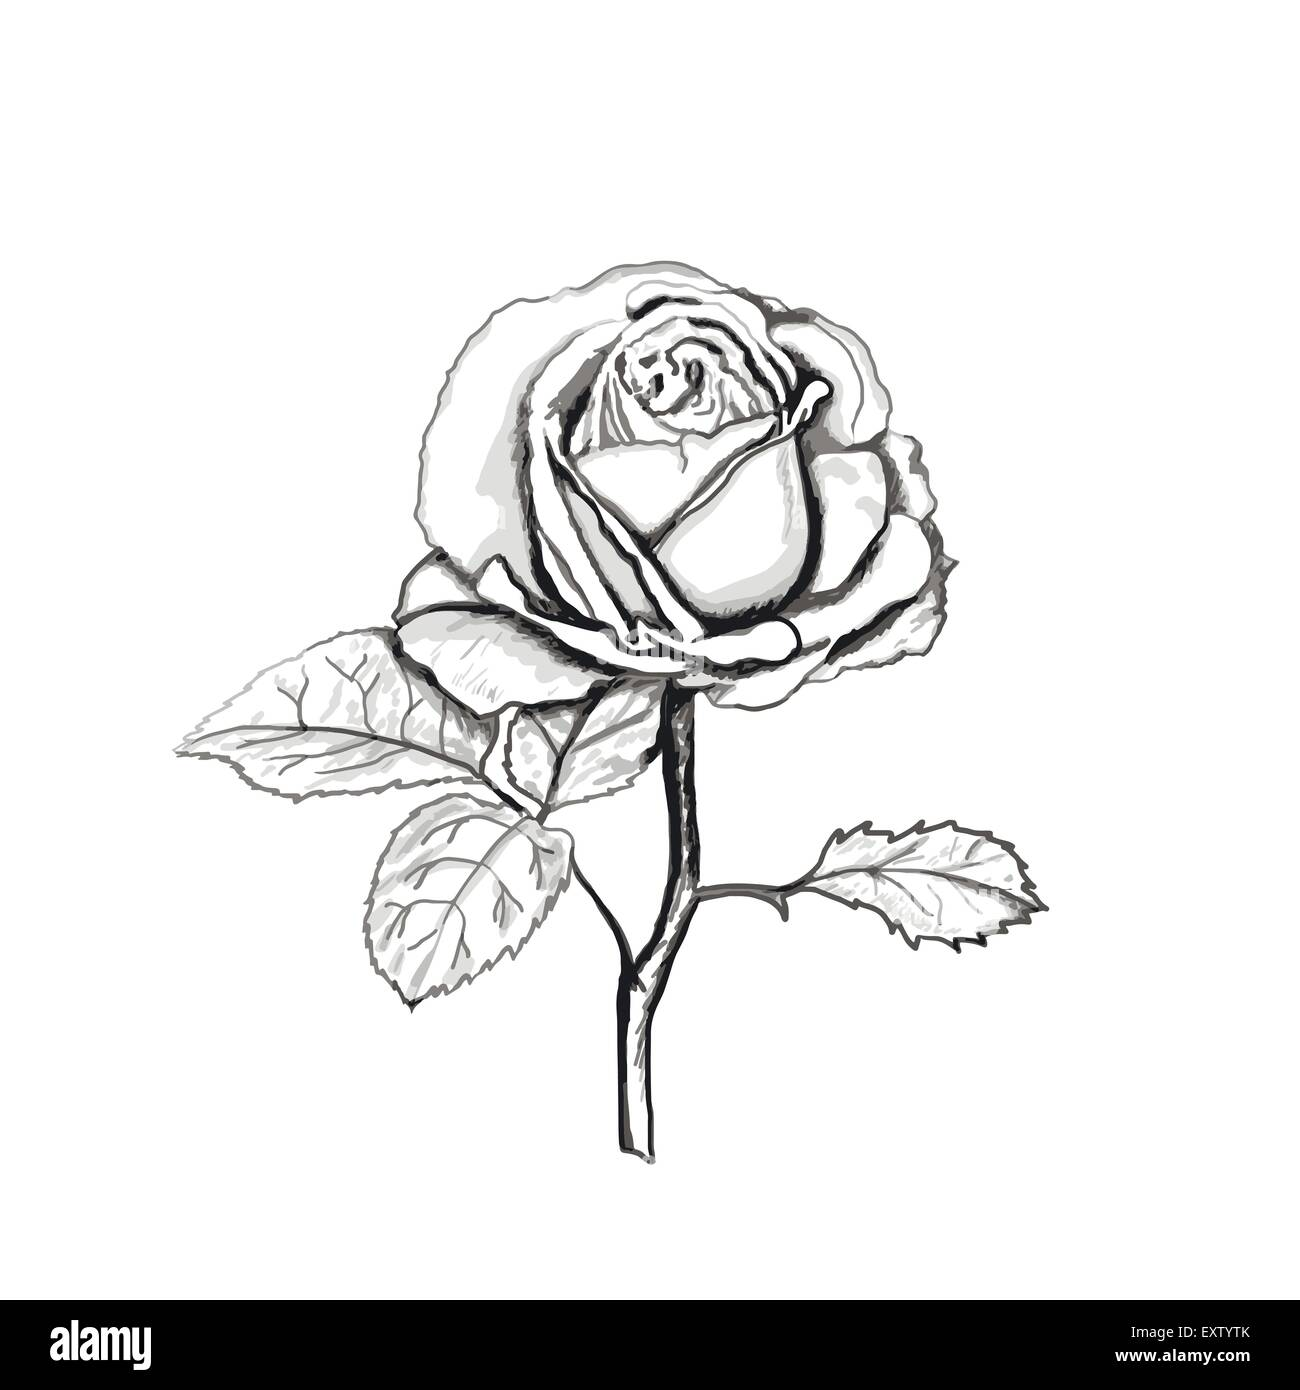 The Rose And Thorn Stock Vector Images Alamy Flower Line Diagram Simple Drawing Of Bud Sketch